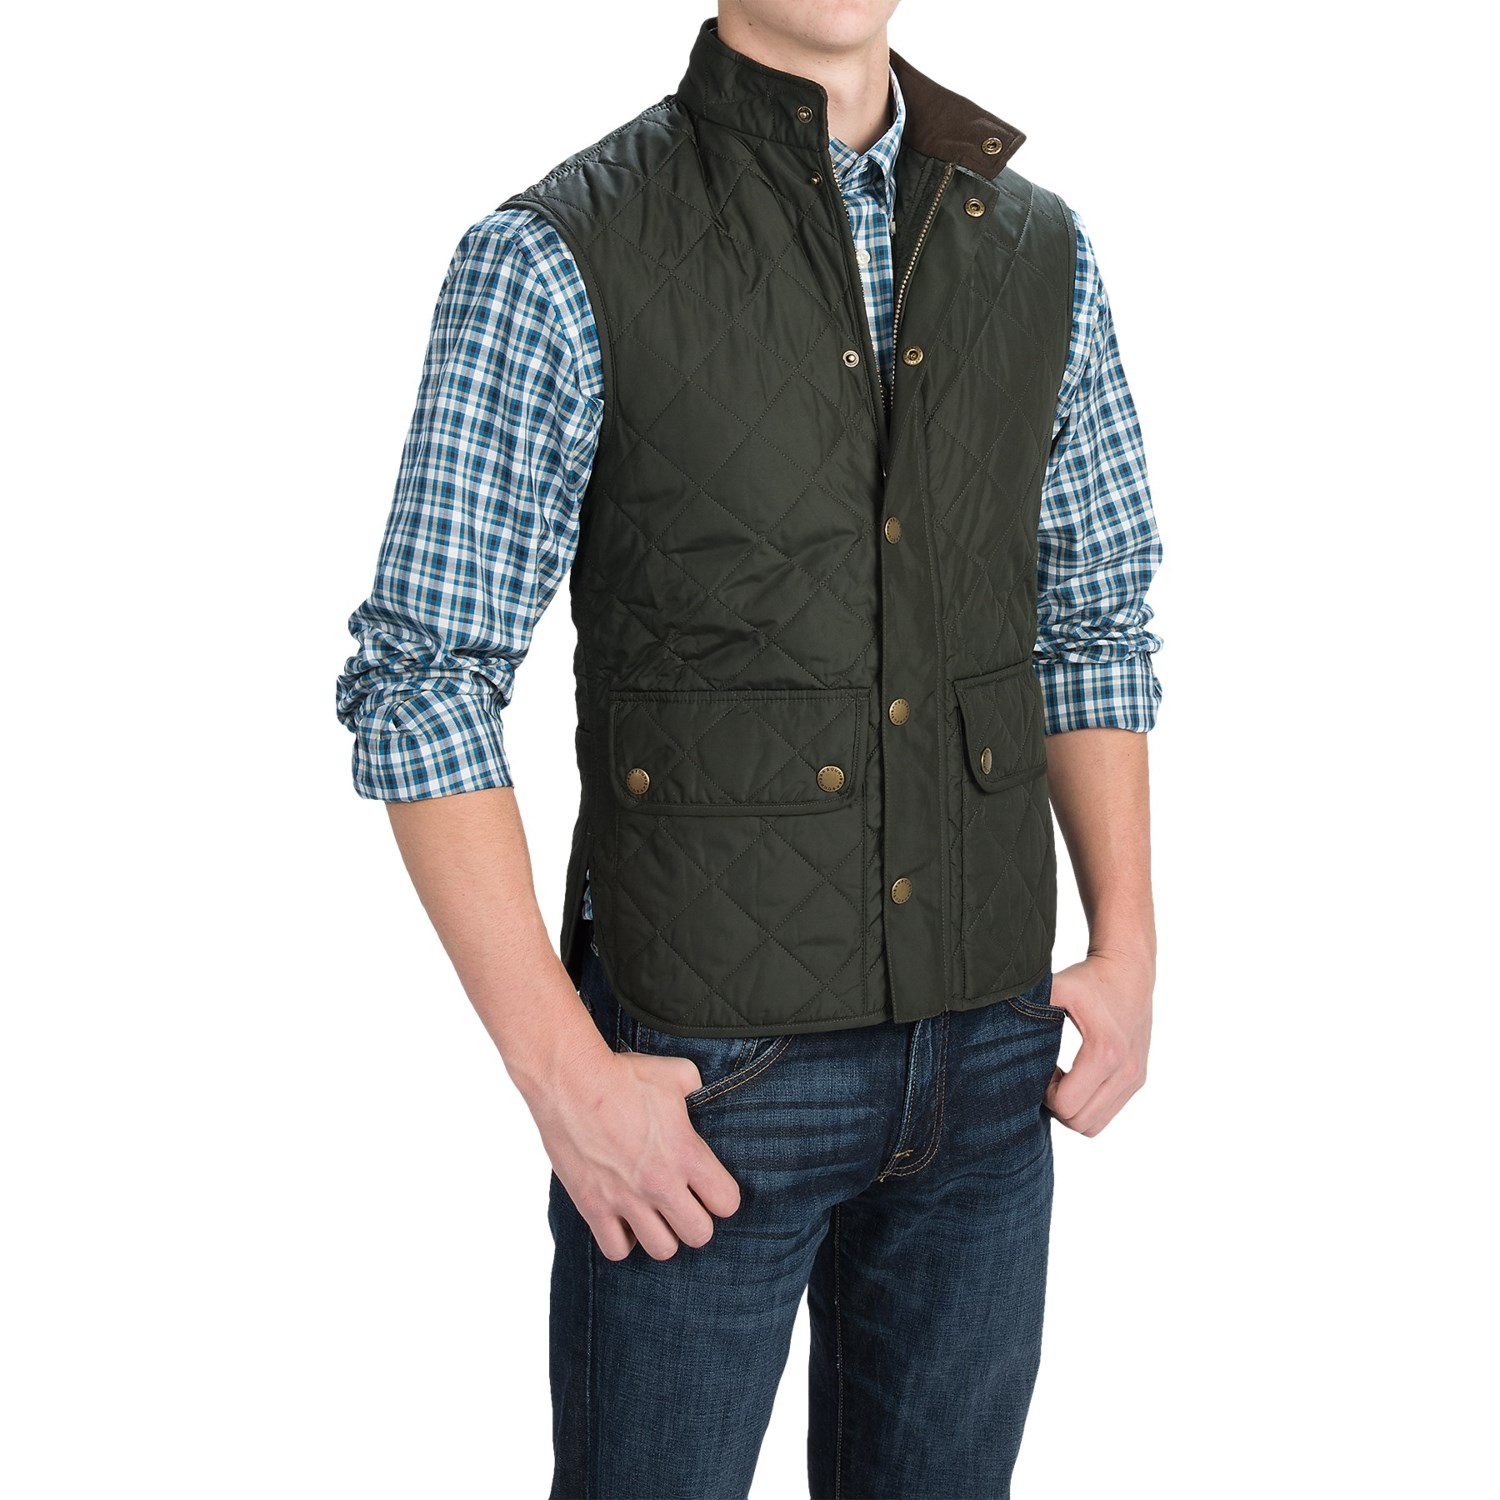 Made by Coleman, this vest is a great find! It is black colored with brown accents! It has two front pockets to keep your hands warm. It has no sleeves.